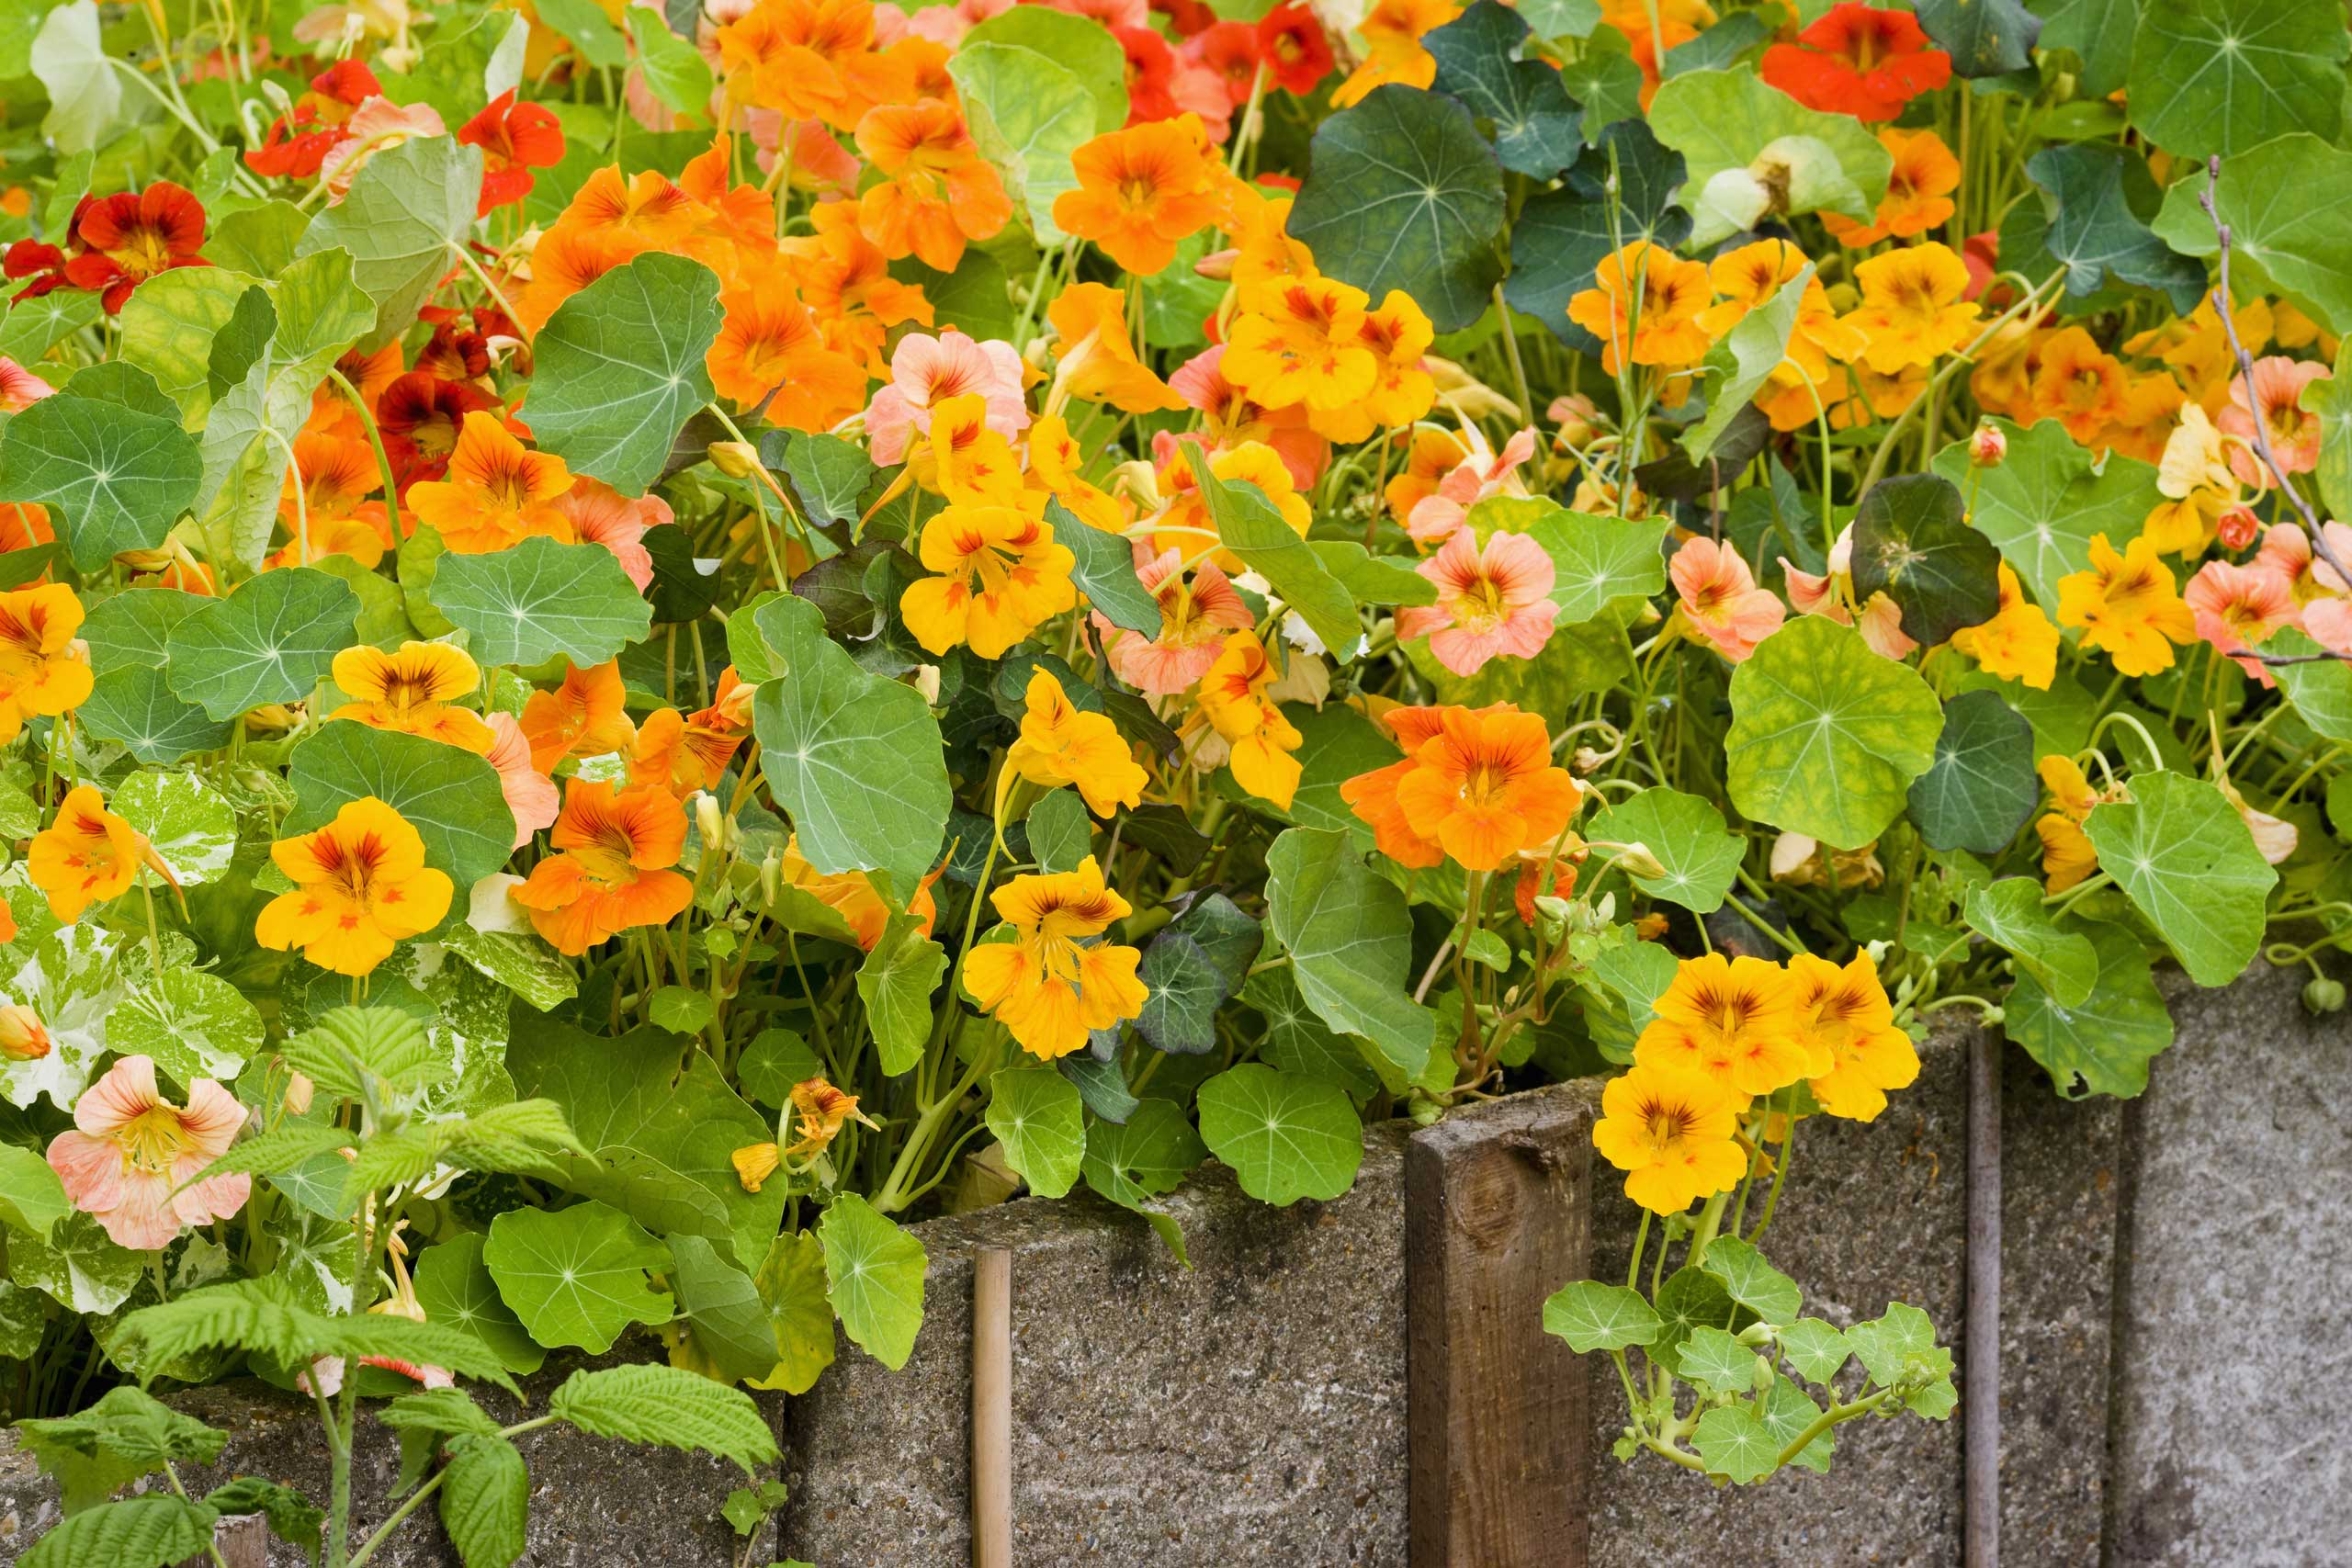 Nasturtiums (Tropaeolum) including 'Alaska' and 'Empress of India'